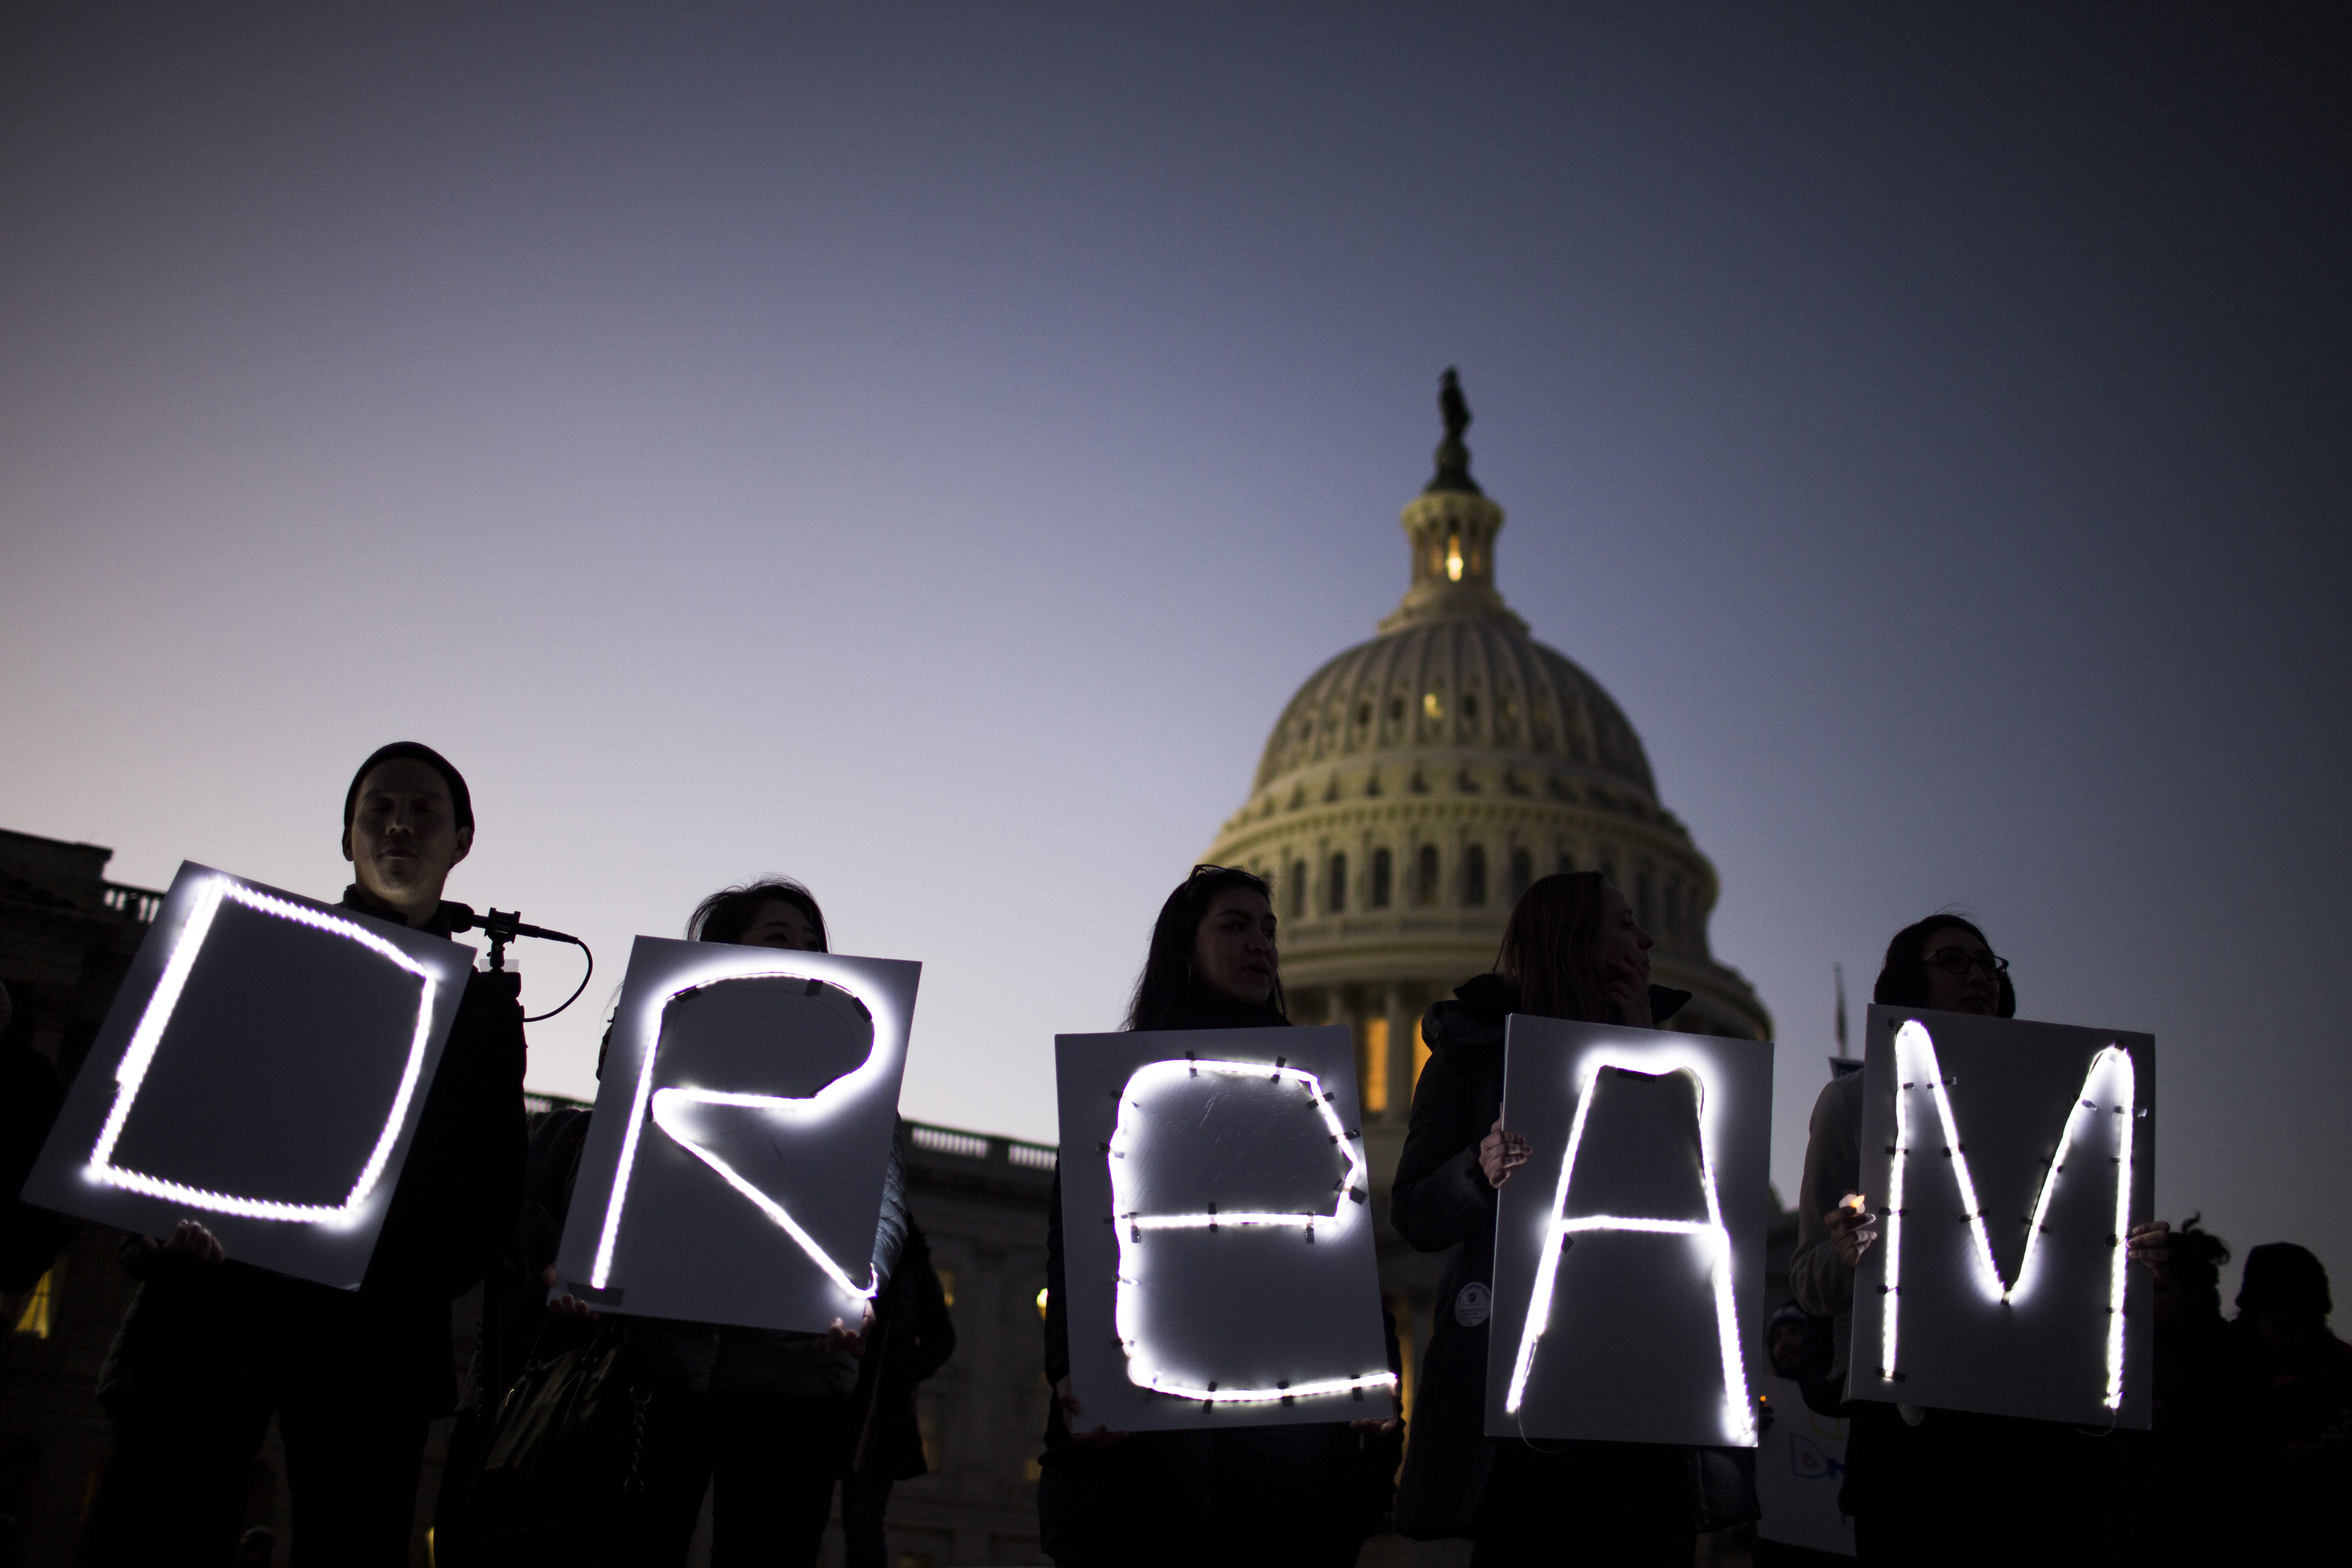 Demonstrators hold illuminated signs during a rally supporting the Deferred Action for Childhood Arrivals program (DACA), or the Dream Act, outside the U.S. Capitol building in Washington, D.C., U.S., on Jan. 18, 2018.